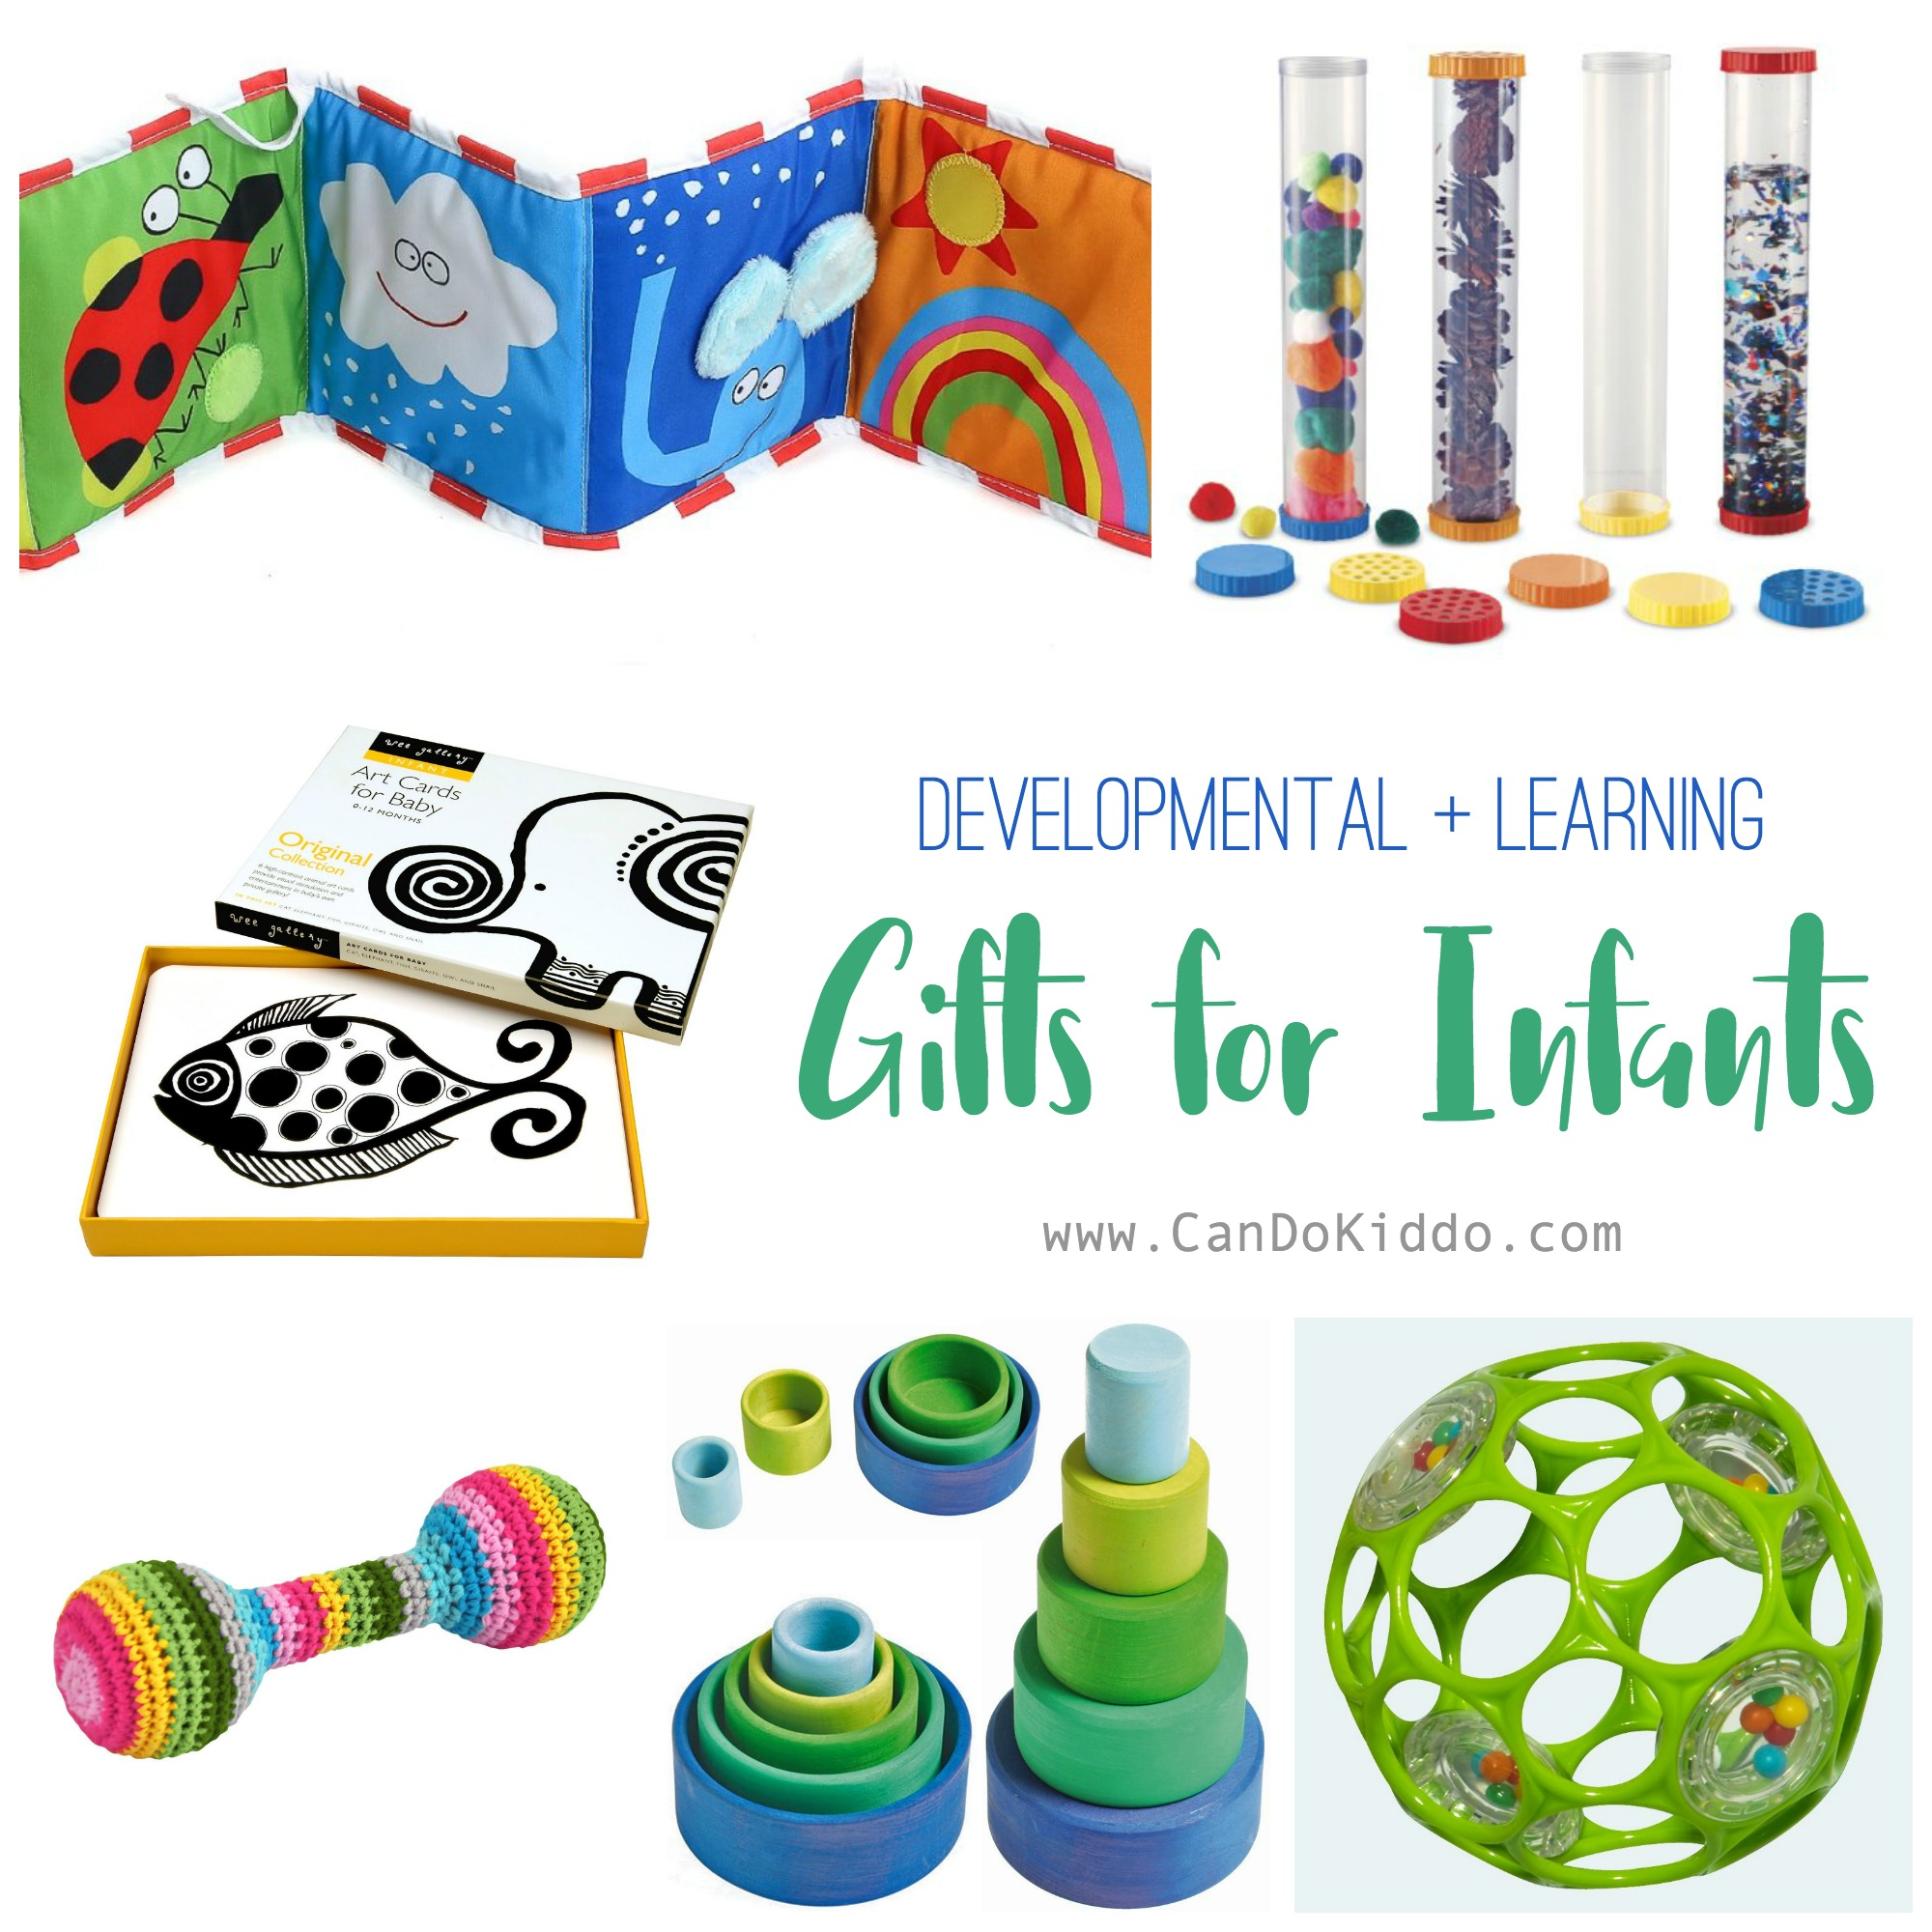 Toys and gifts for babies - infants. www.CanDoKiddo.com